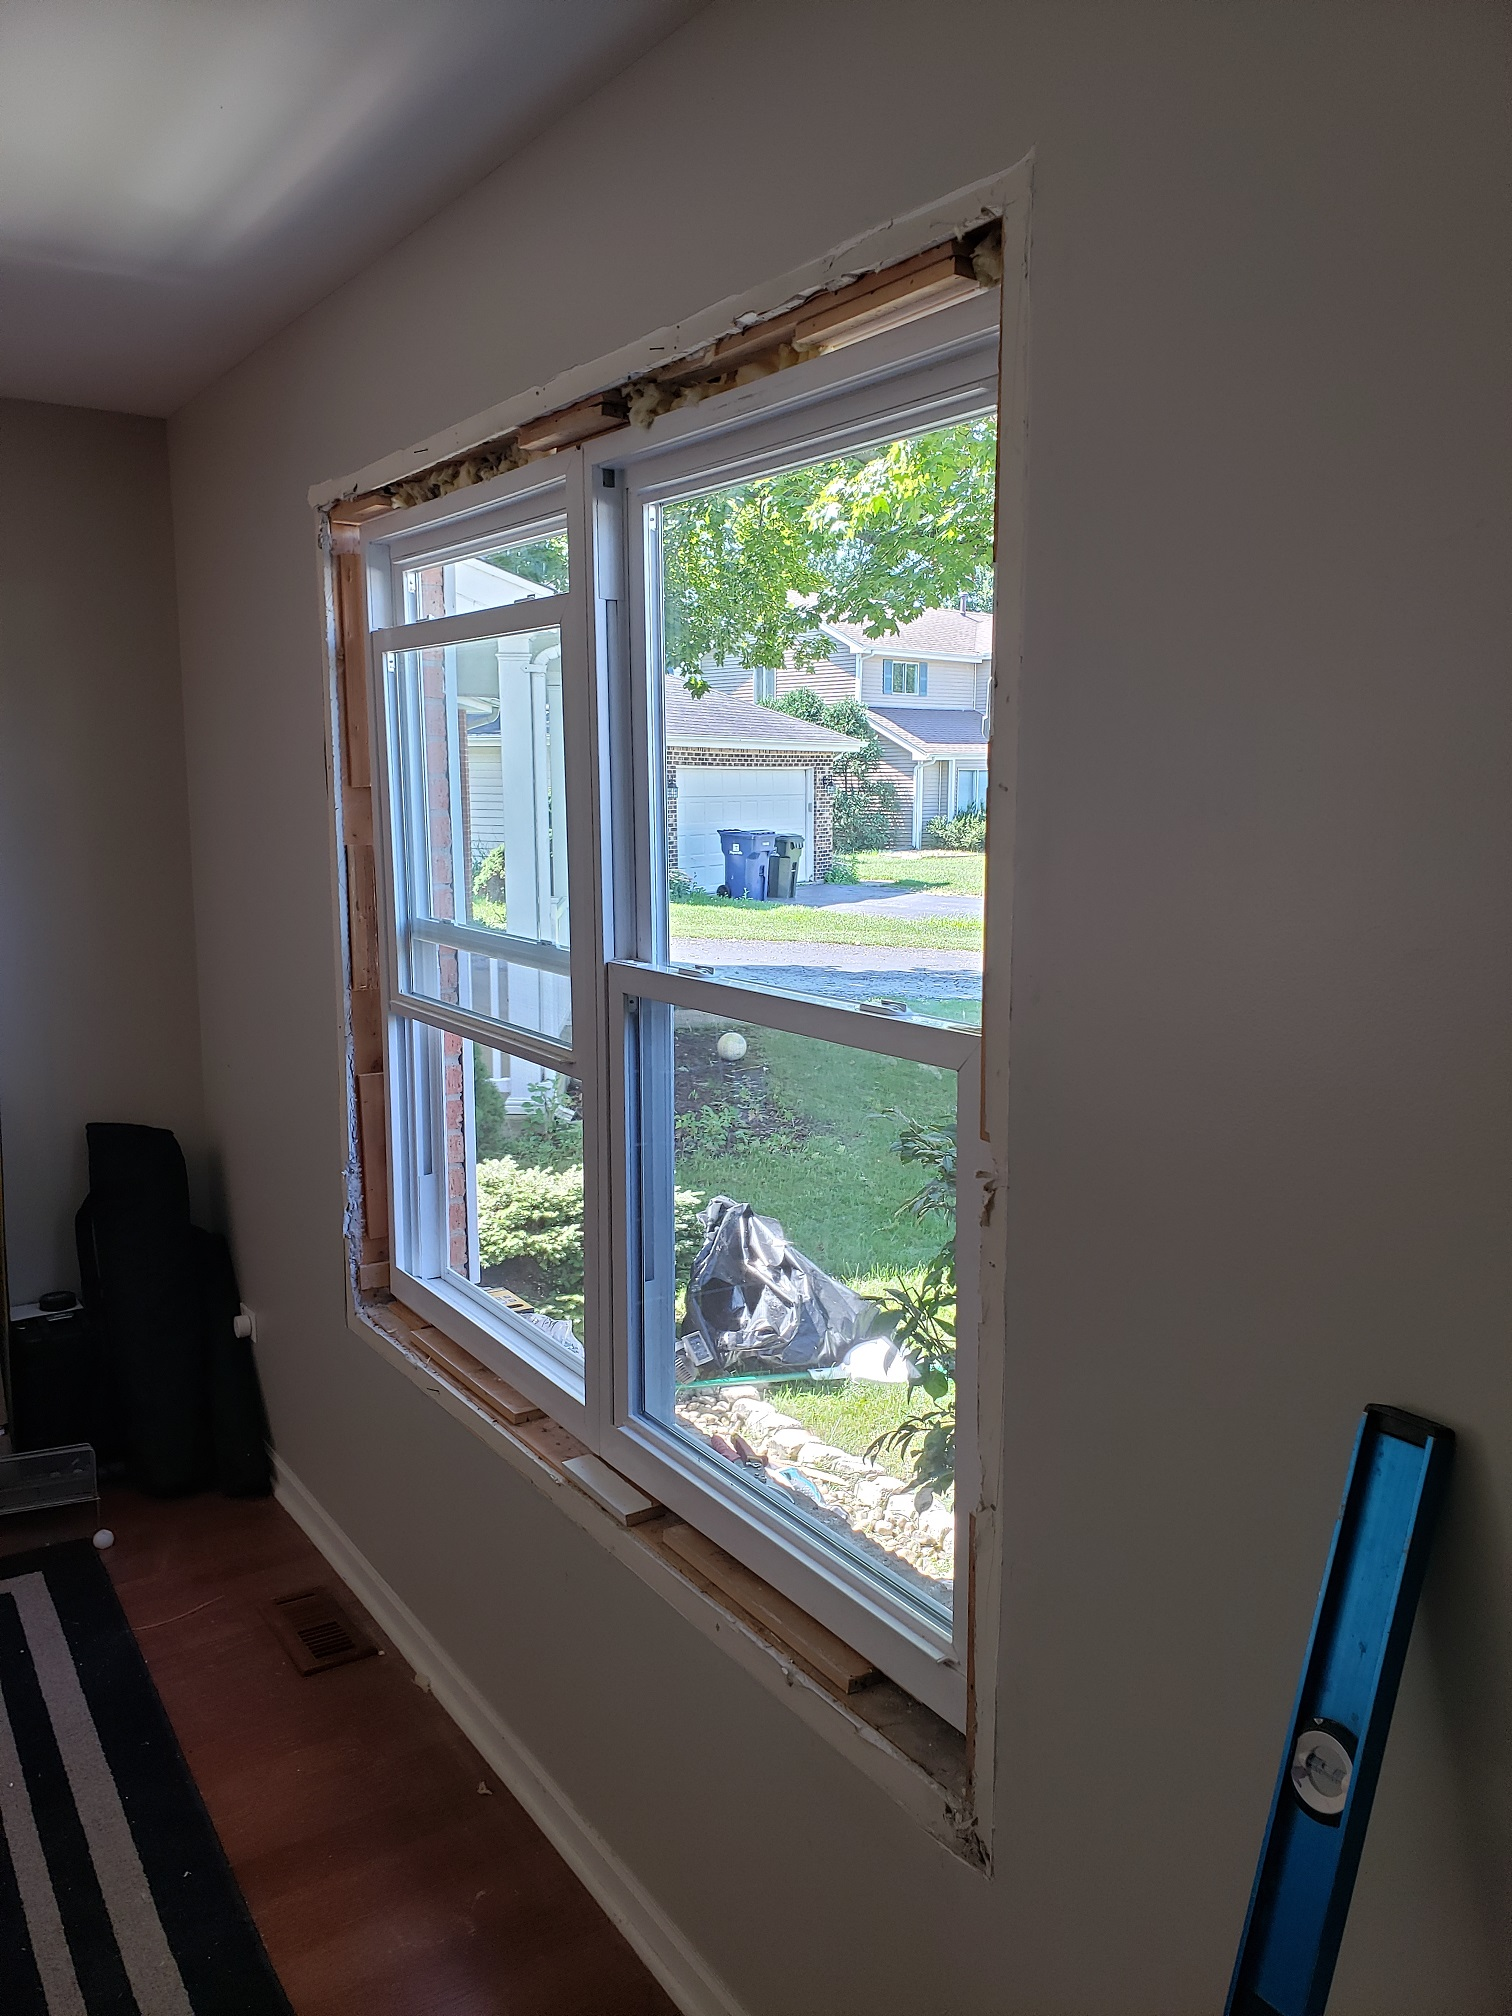 My Landlord Hired a Hack...Not a Surprise-2019-08-23-11.43.57-1.jpg